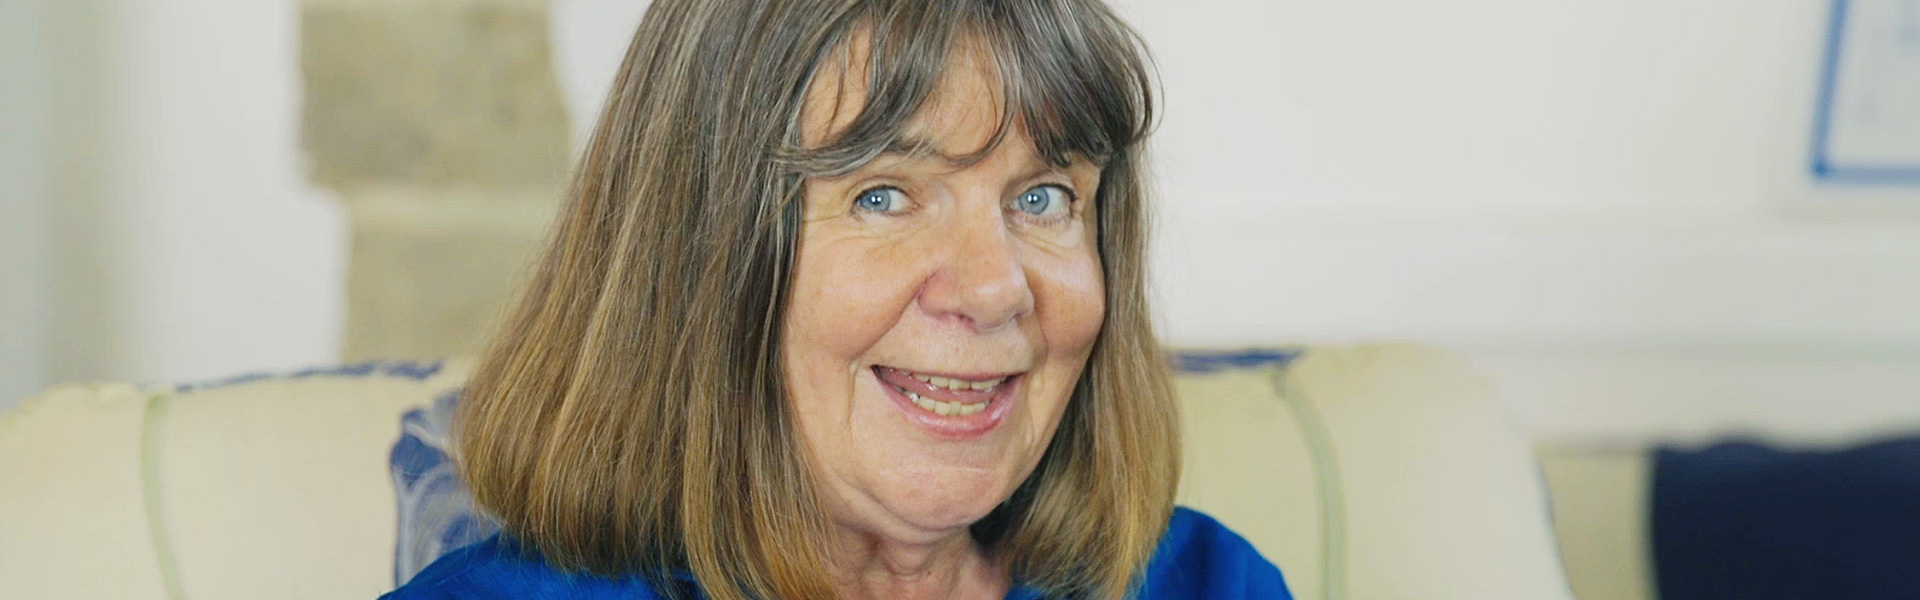 Exclusive Video! Julia Donaldson Reads an Extract from Christmas with Princess Mirror-Belle